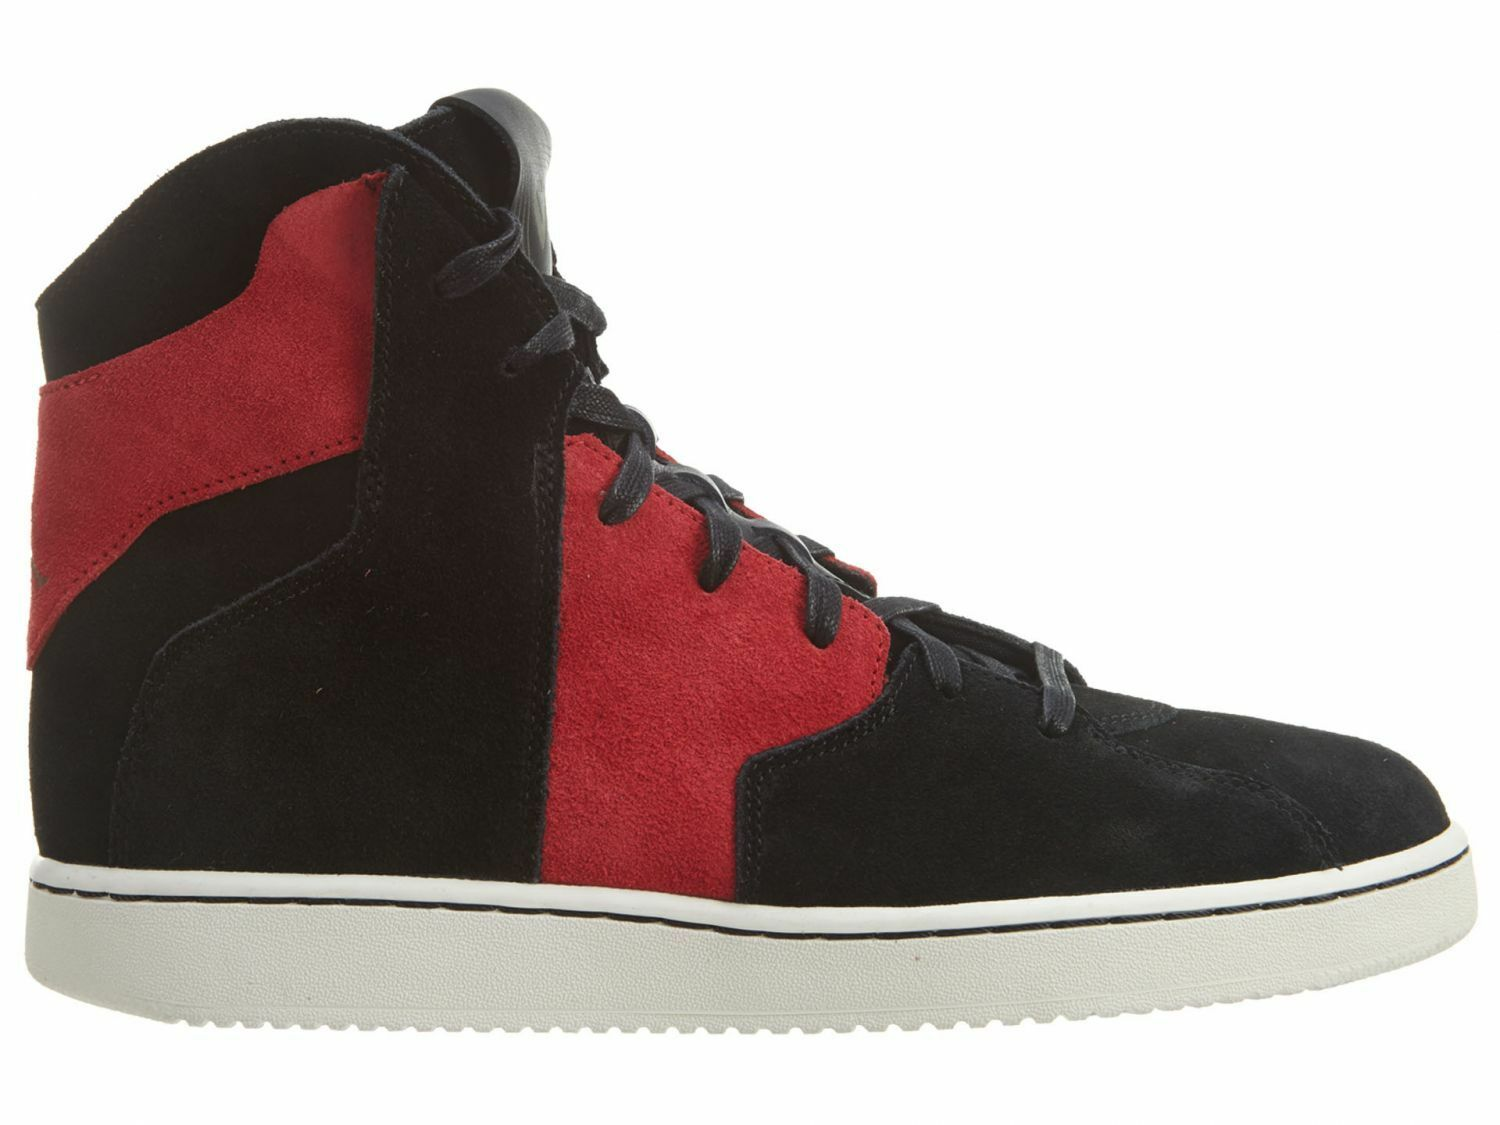 Jordan Westbrook 0.2 Banned Mens 854563-001 Black Gym Red Suede Shoes Comfortable Wild casual shoes